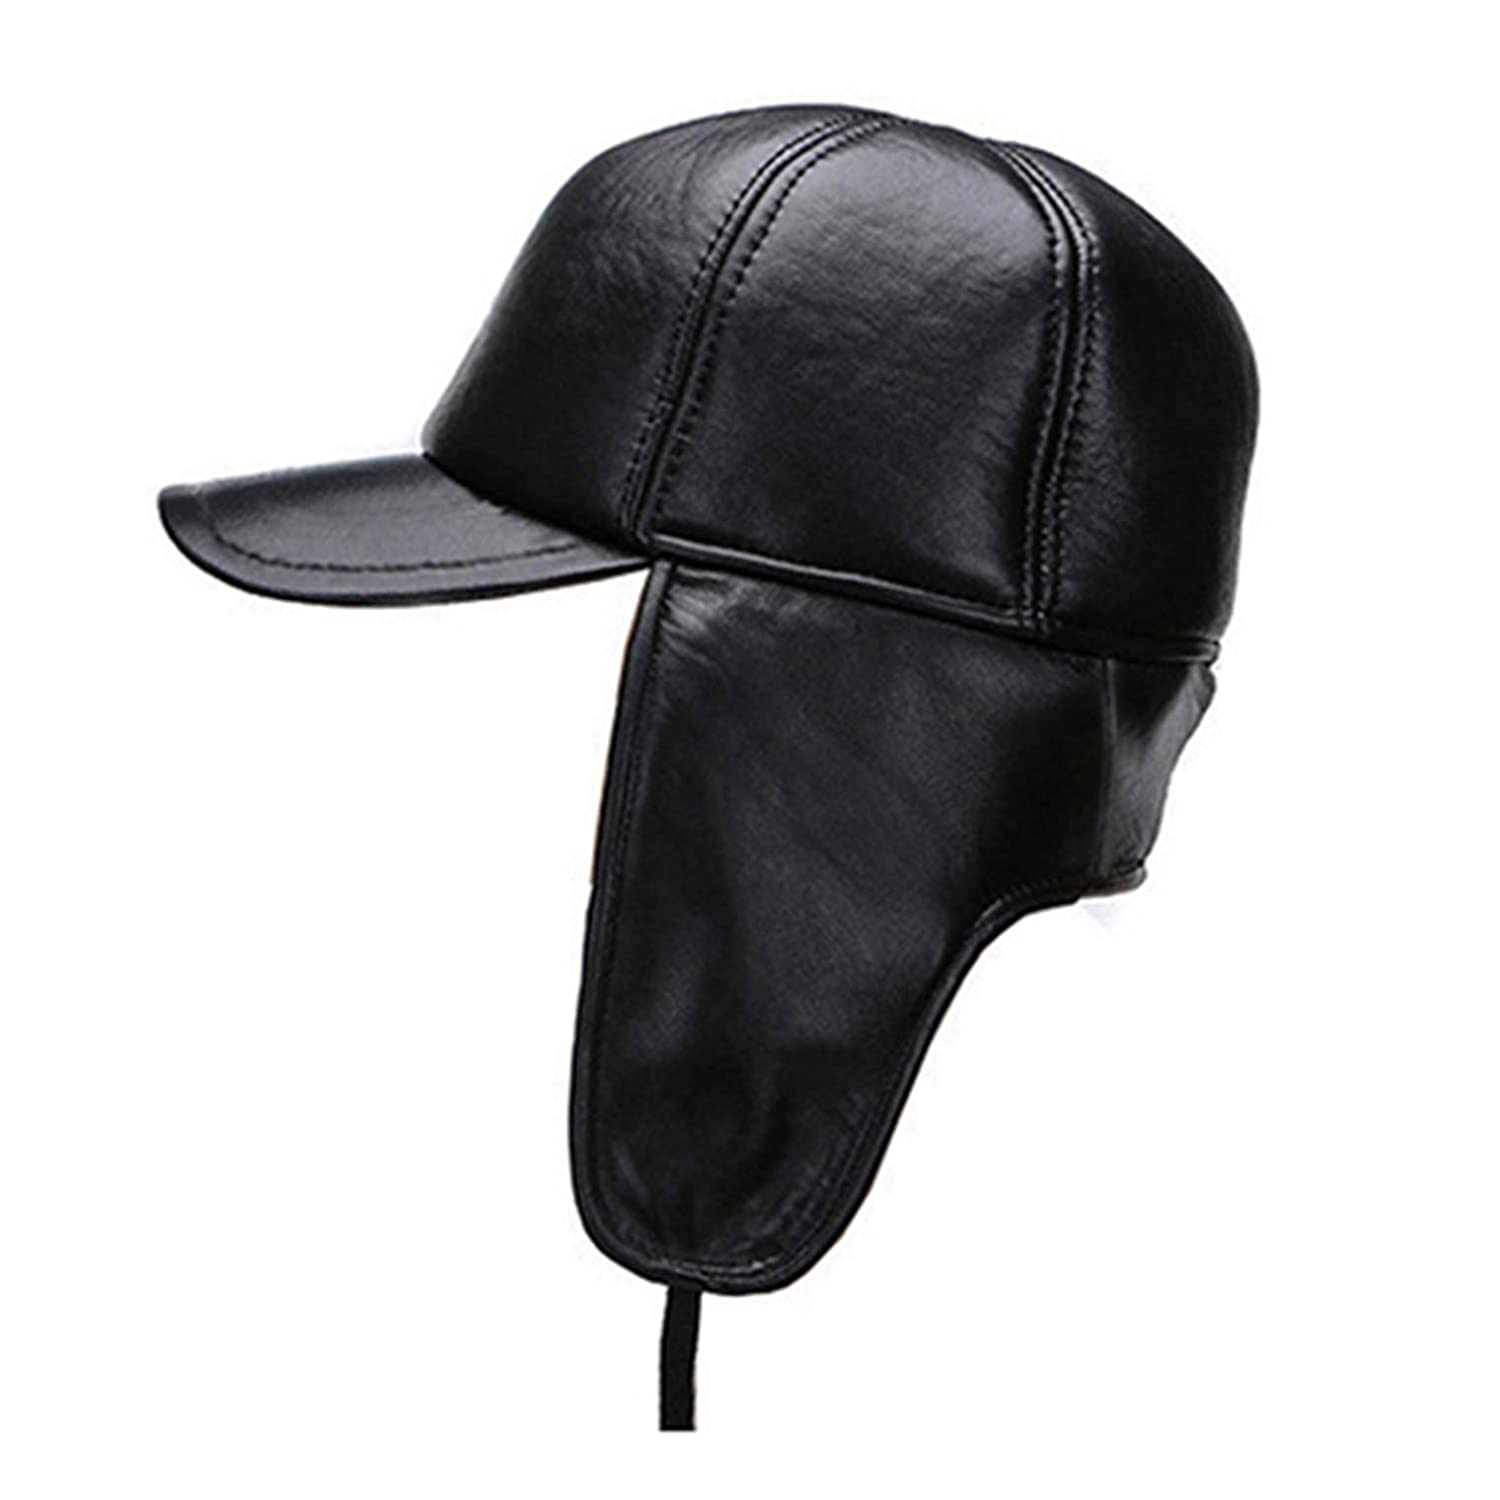 24ade628 SANOMY Unisex Bomber Trooper Trooper Trooper Trapper Hat,Winter Warm Thick  Male Ear Predect Cap Earflaps Outdoor Caps e320c7